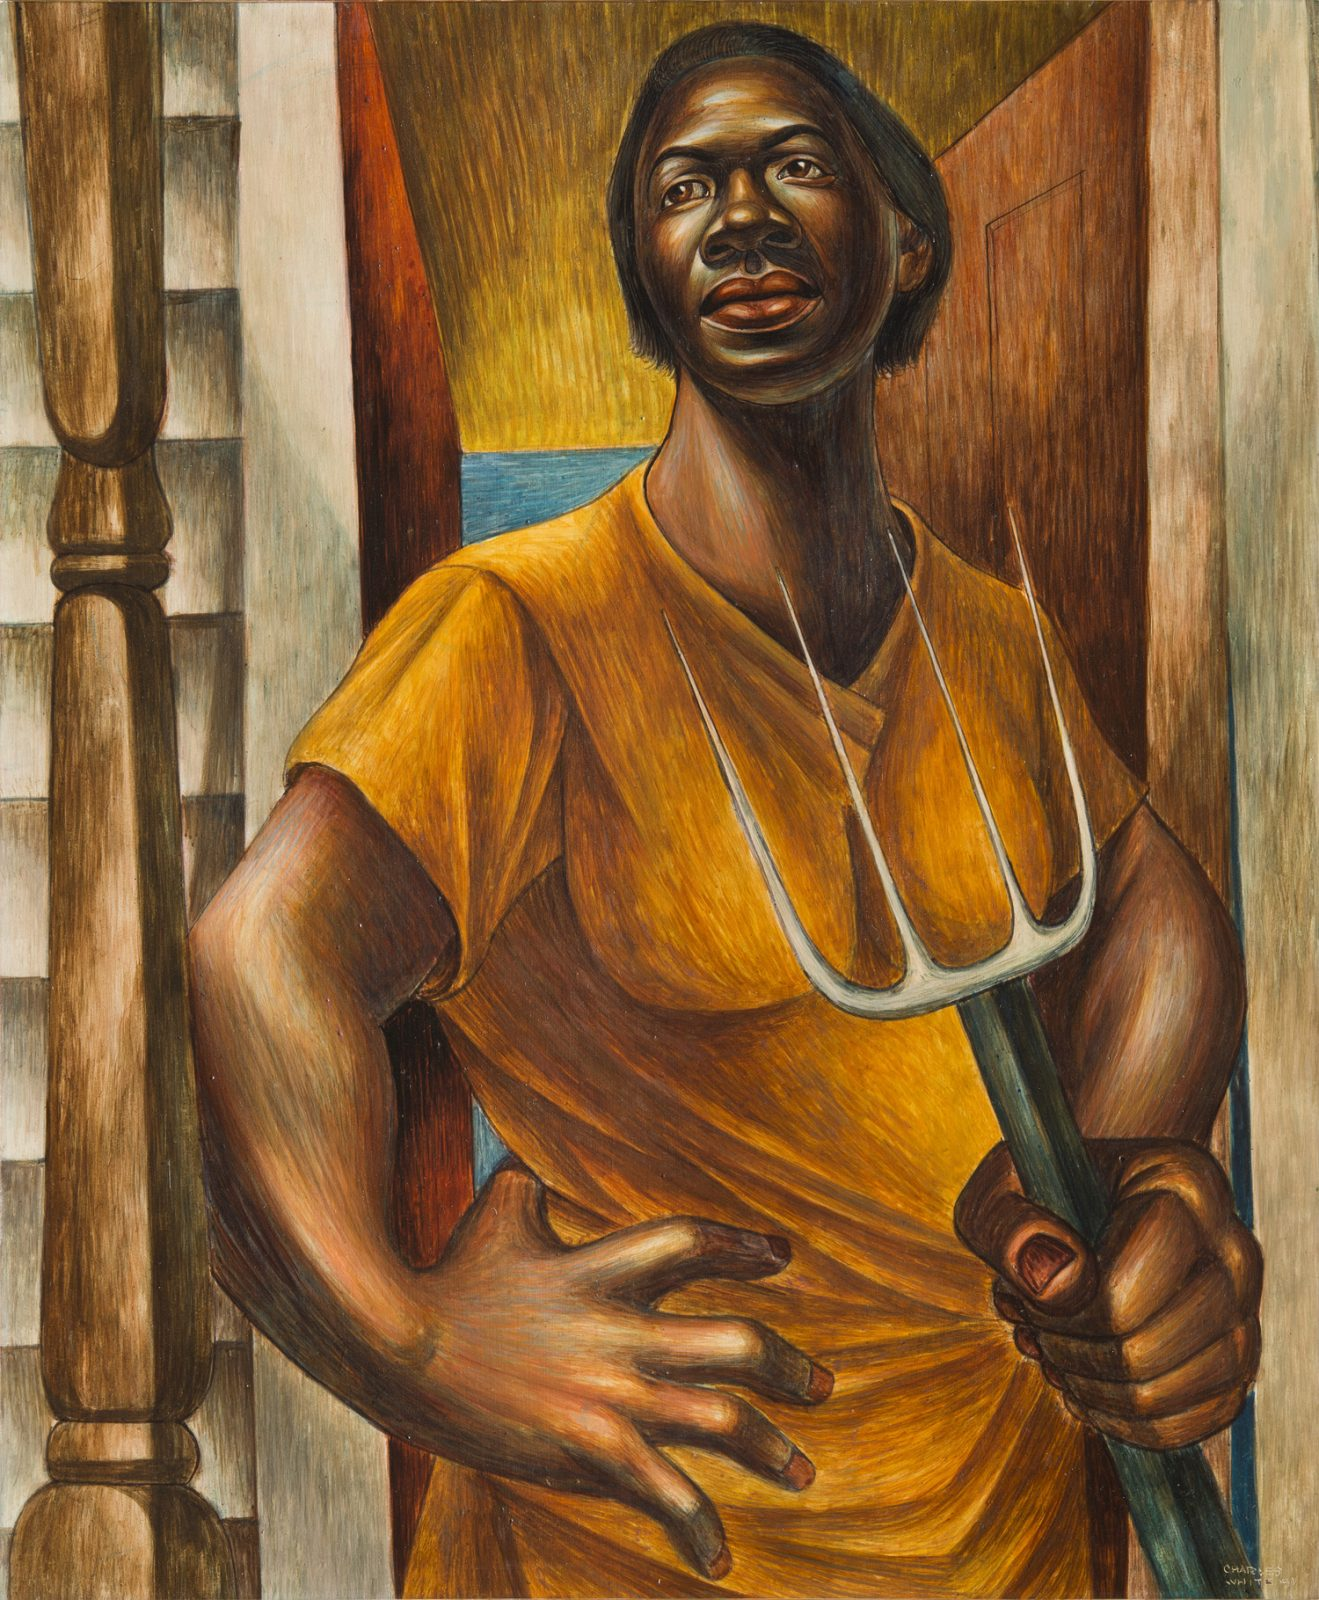 This work by Charles Whites shows a sharecropper woman standing on the threshold of her house looking out